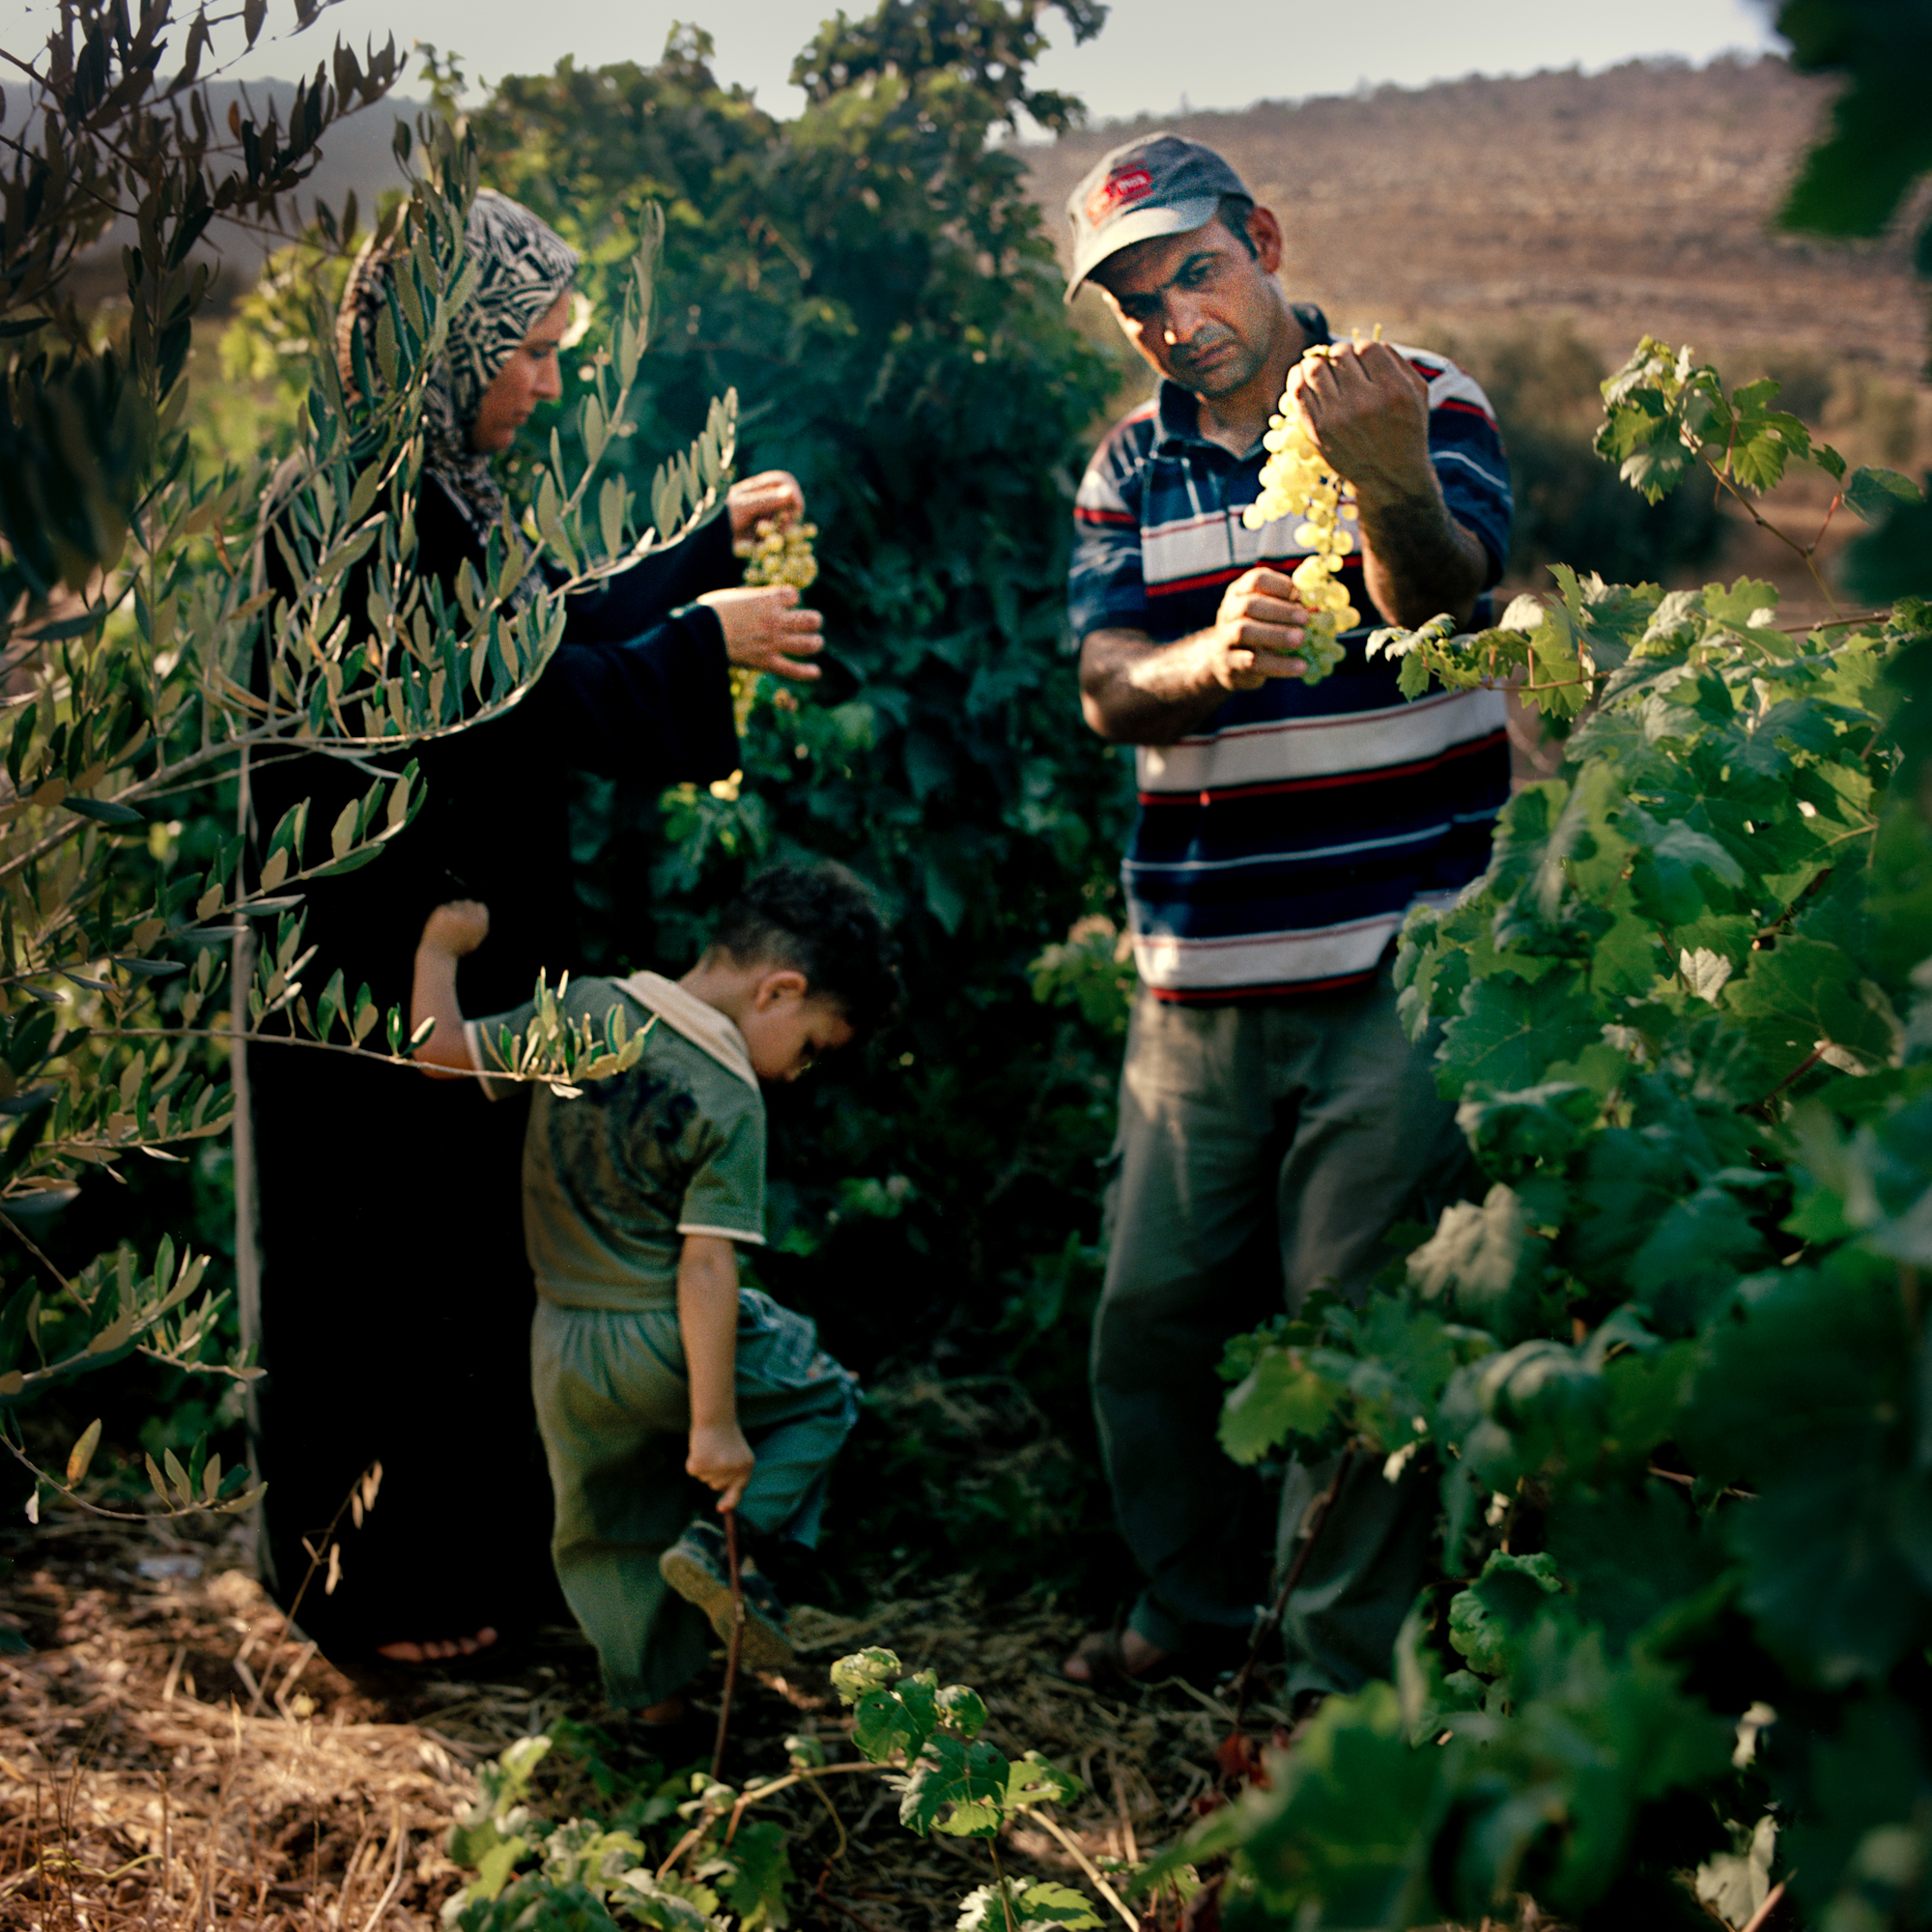 Families from the village pick fruit for the evening dinner during Ramadan.